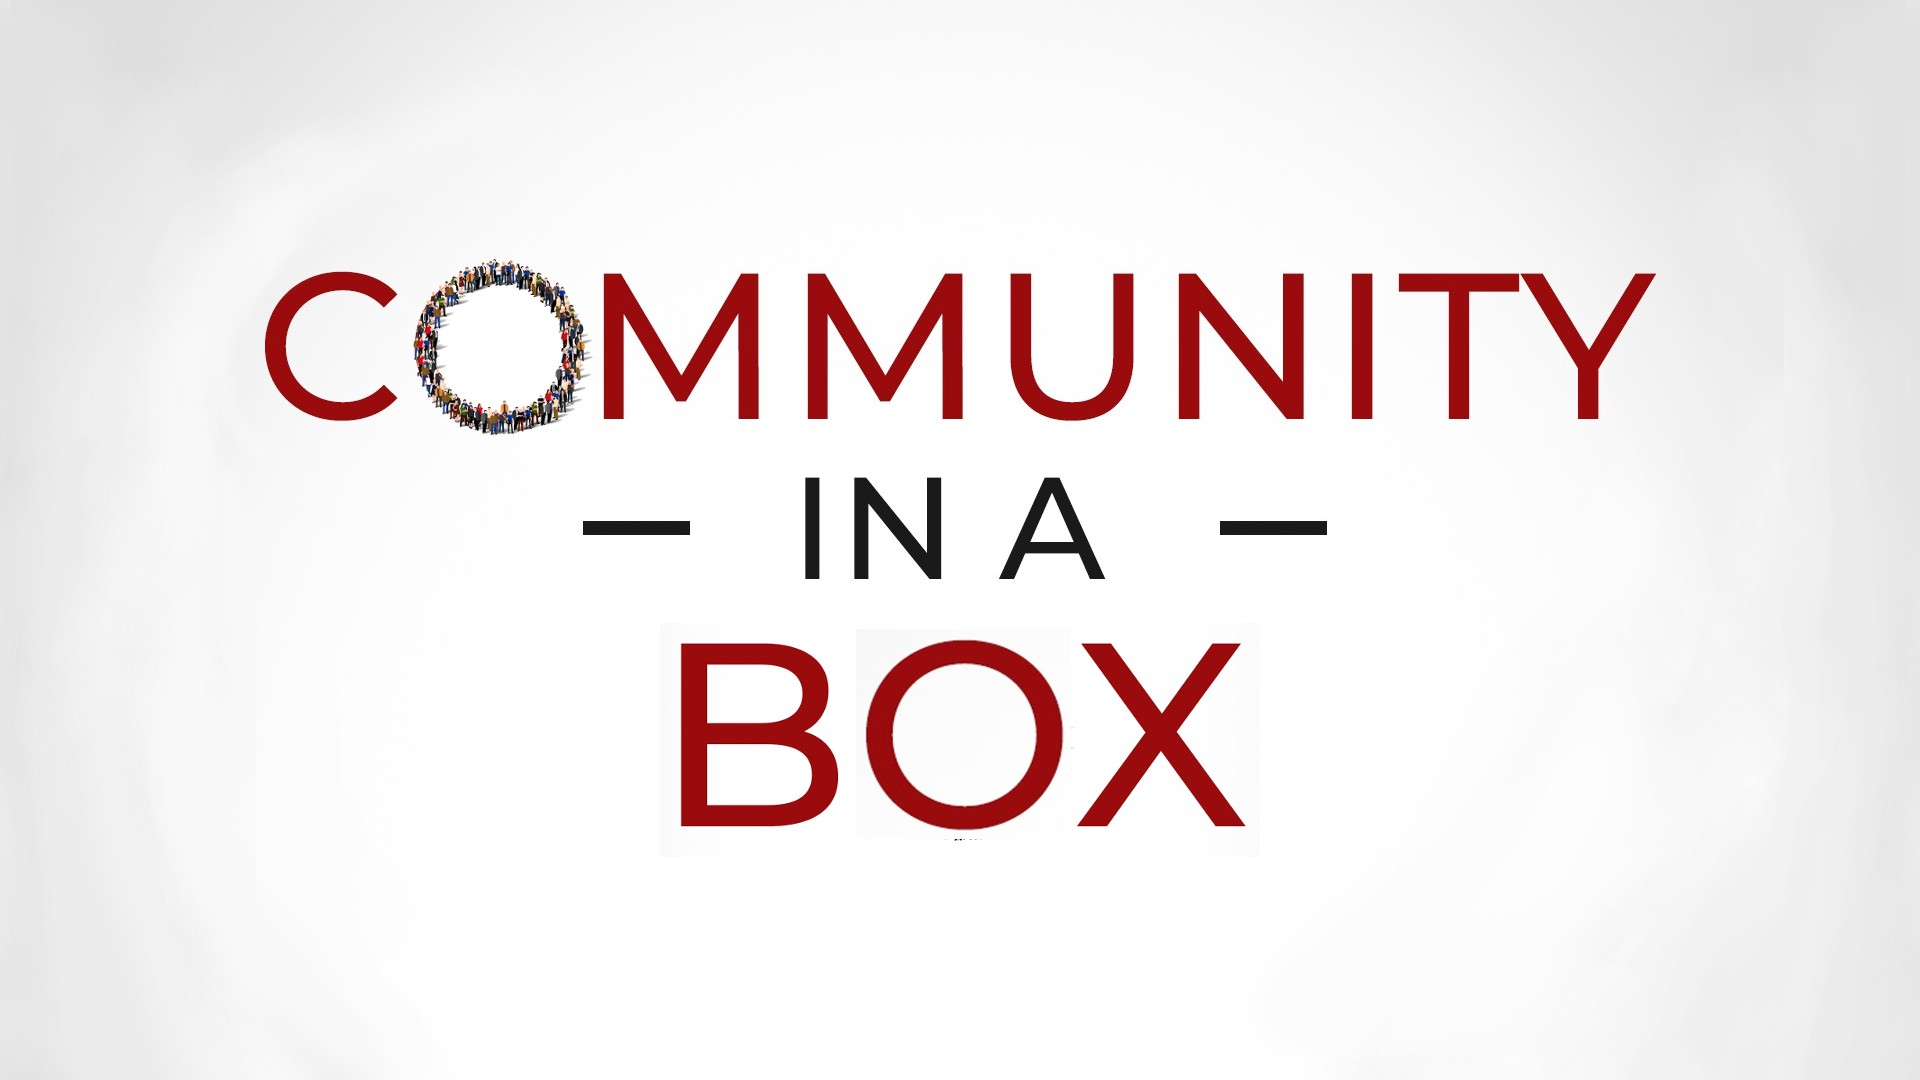 Community-in-a-Box is a book about building and growing healthy and engaged professional communities driven by events